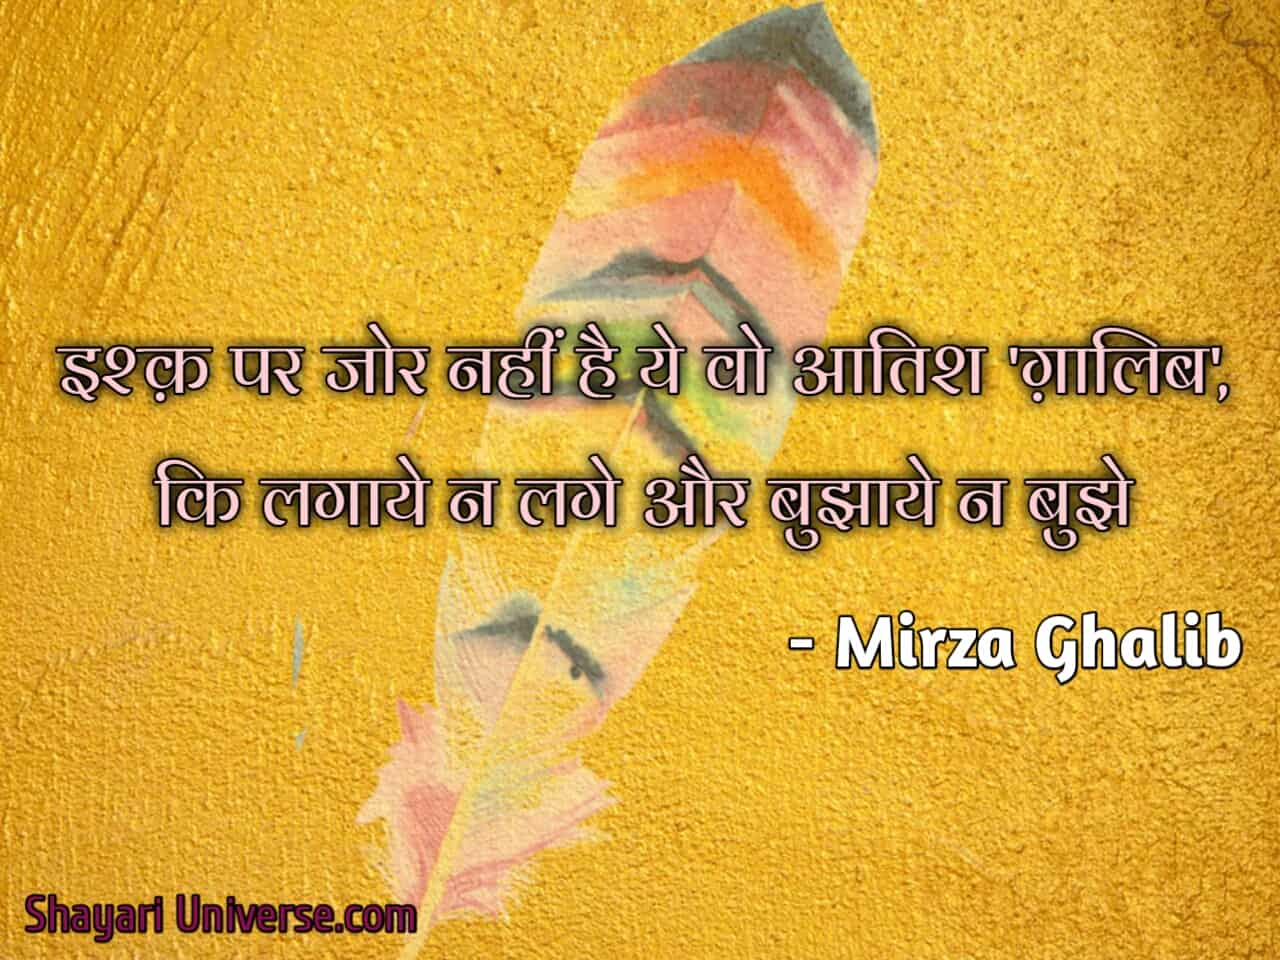 Mirza ghalib shayari in hindi, Ghalib shayari in hindi